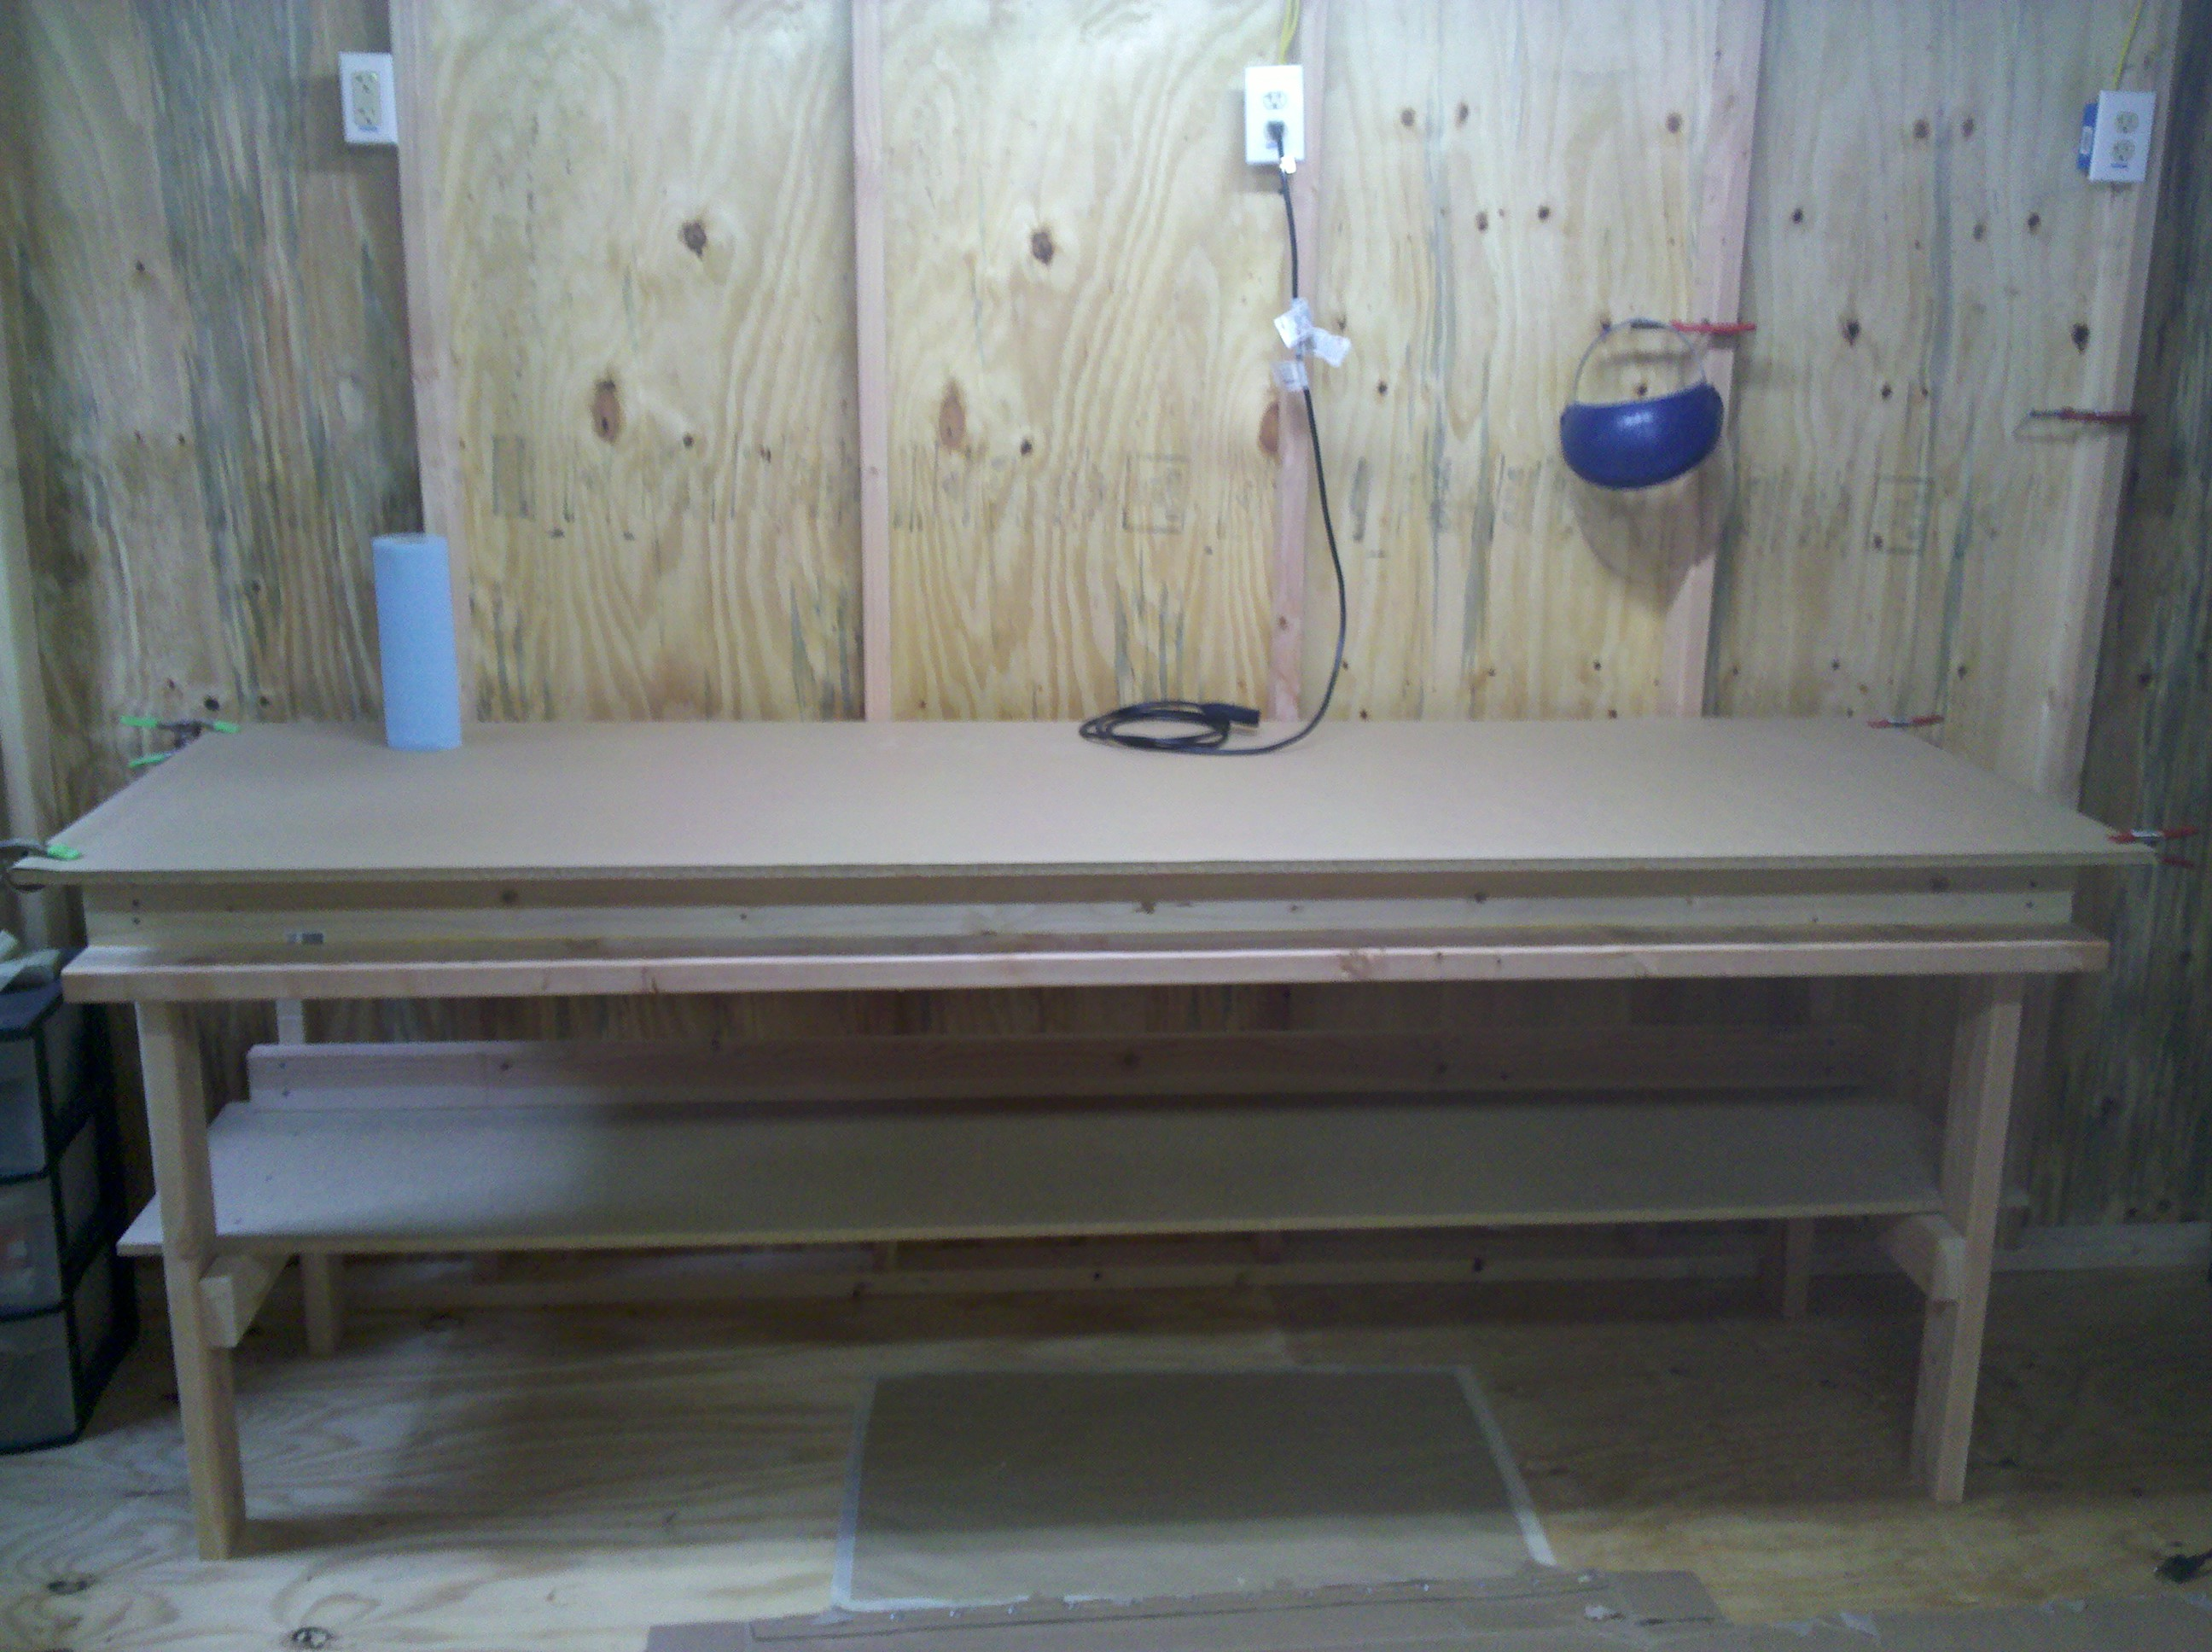 The Very Rigid $45 Eight Foot Workbench